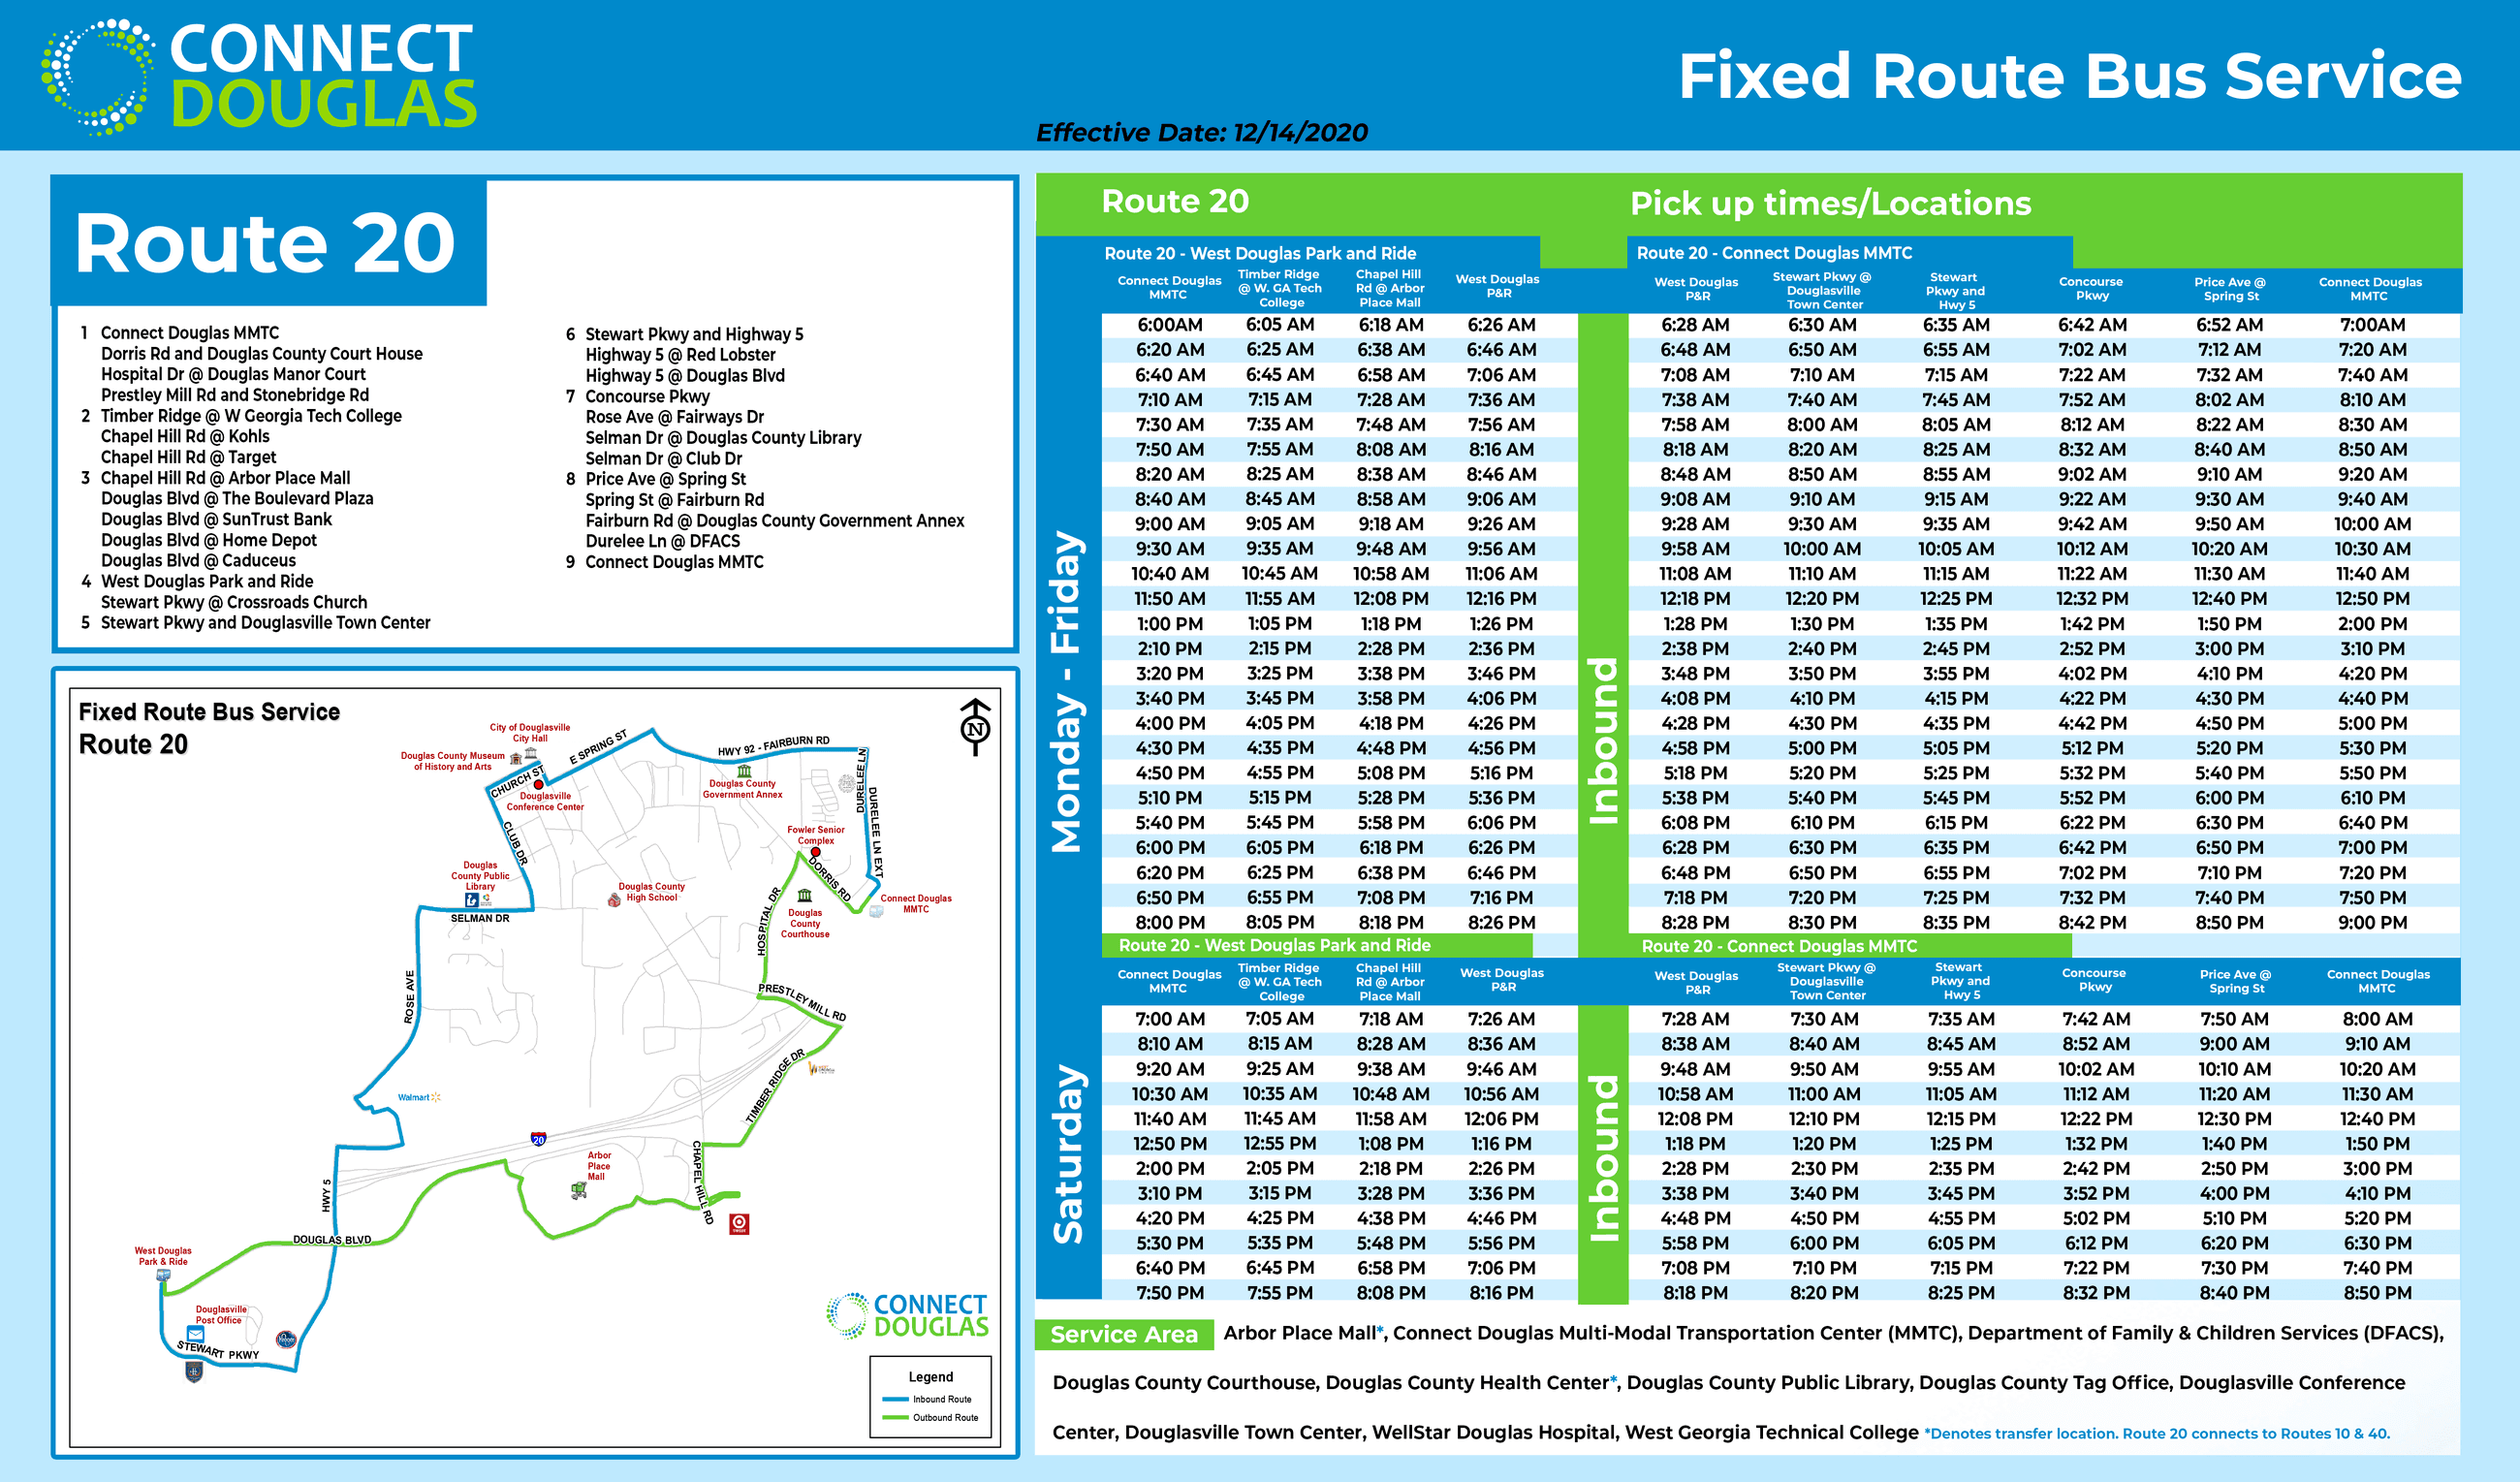 Connect Douglas-Bus Route 20 (Effective 12/14/2020)